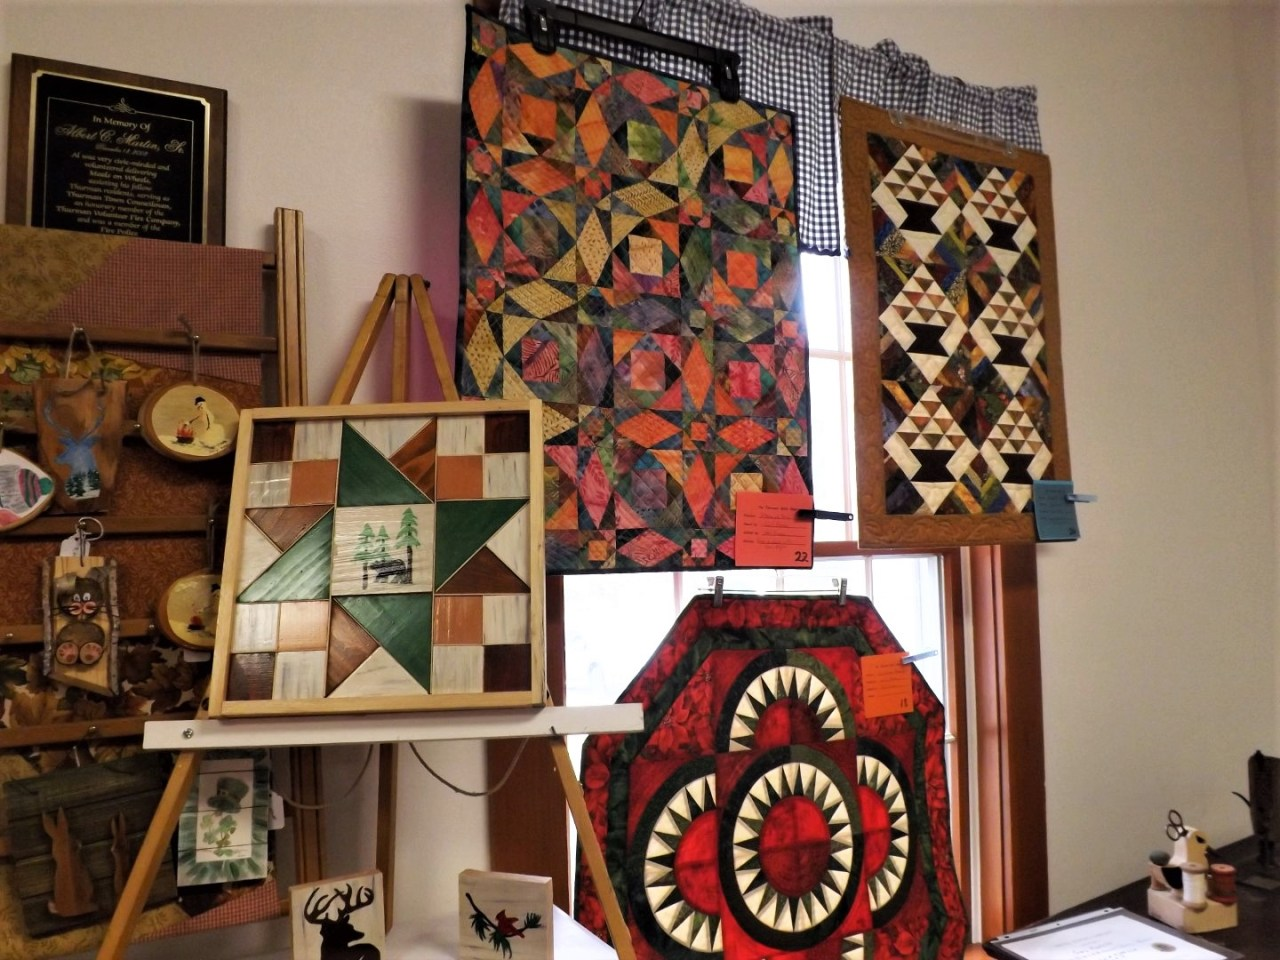 Hand-sewn quilts